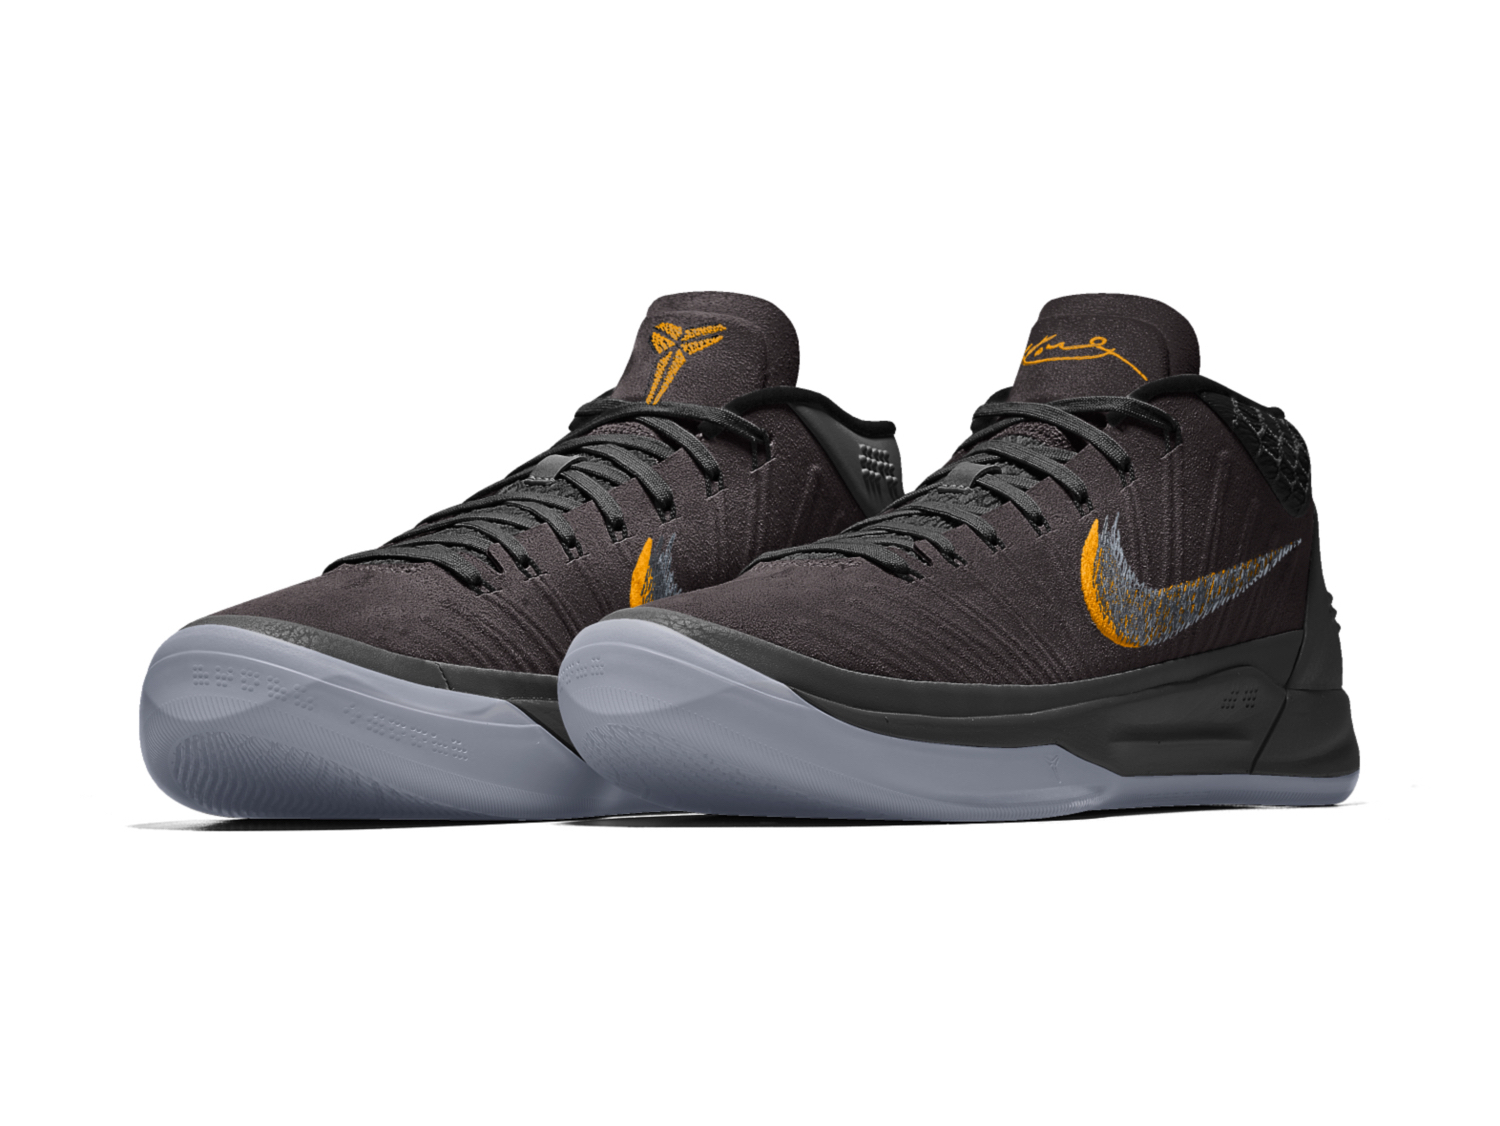 edbd40df204 You Can Now Customize the Latest Nike Kobe AD on NIKEiD - WearTesters